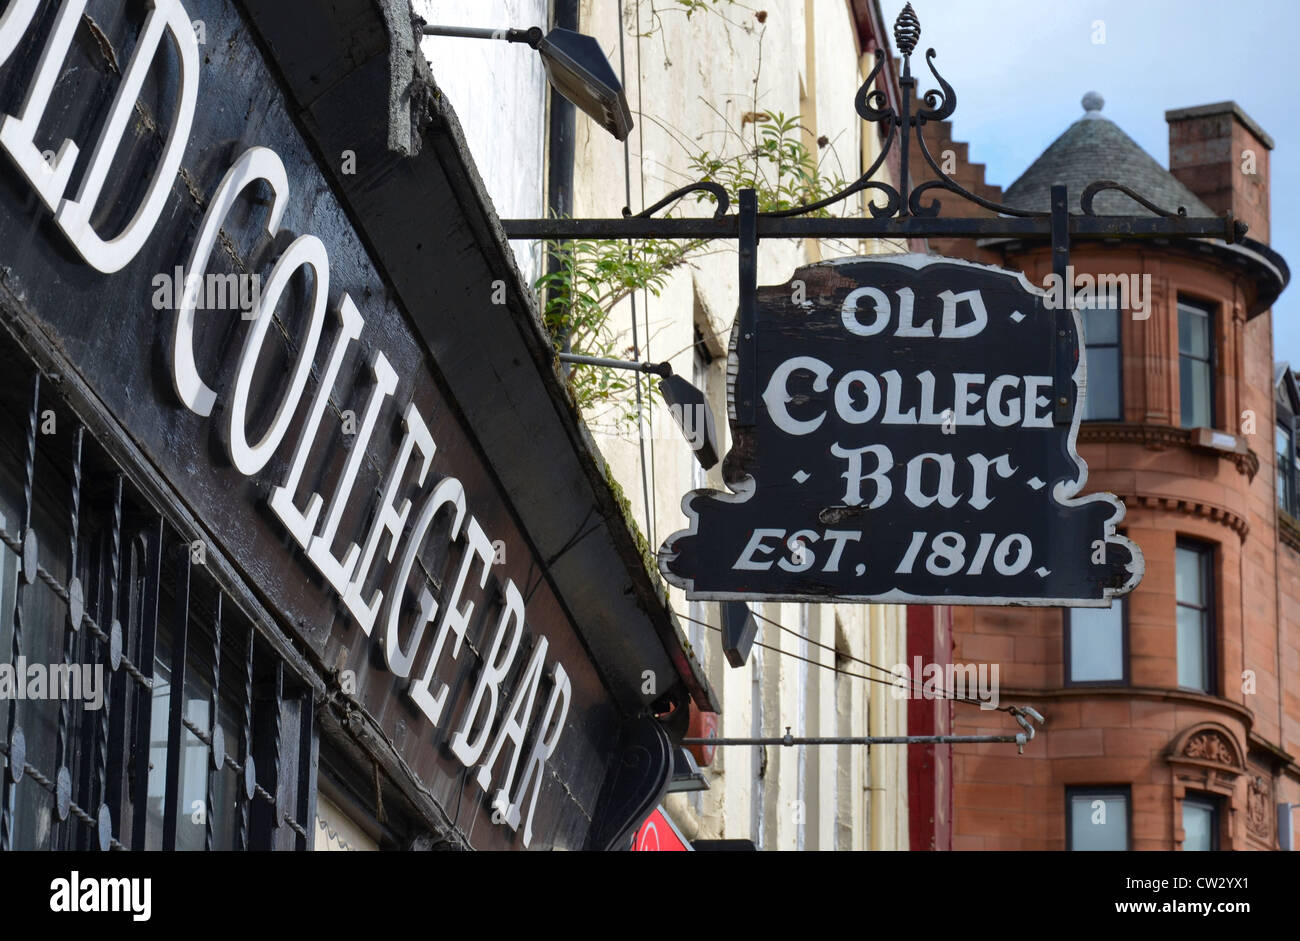 Sign outside the Old College Bar (est. 1810) on Glasgow's High Street on the edge of the Merchant City area. - Stock Image